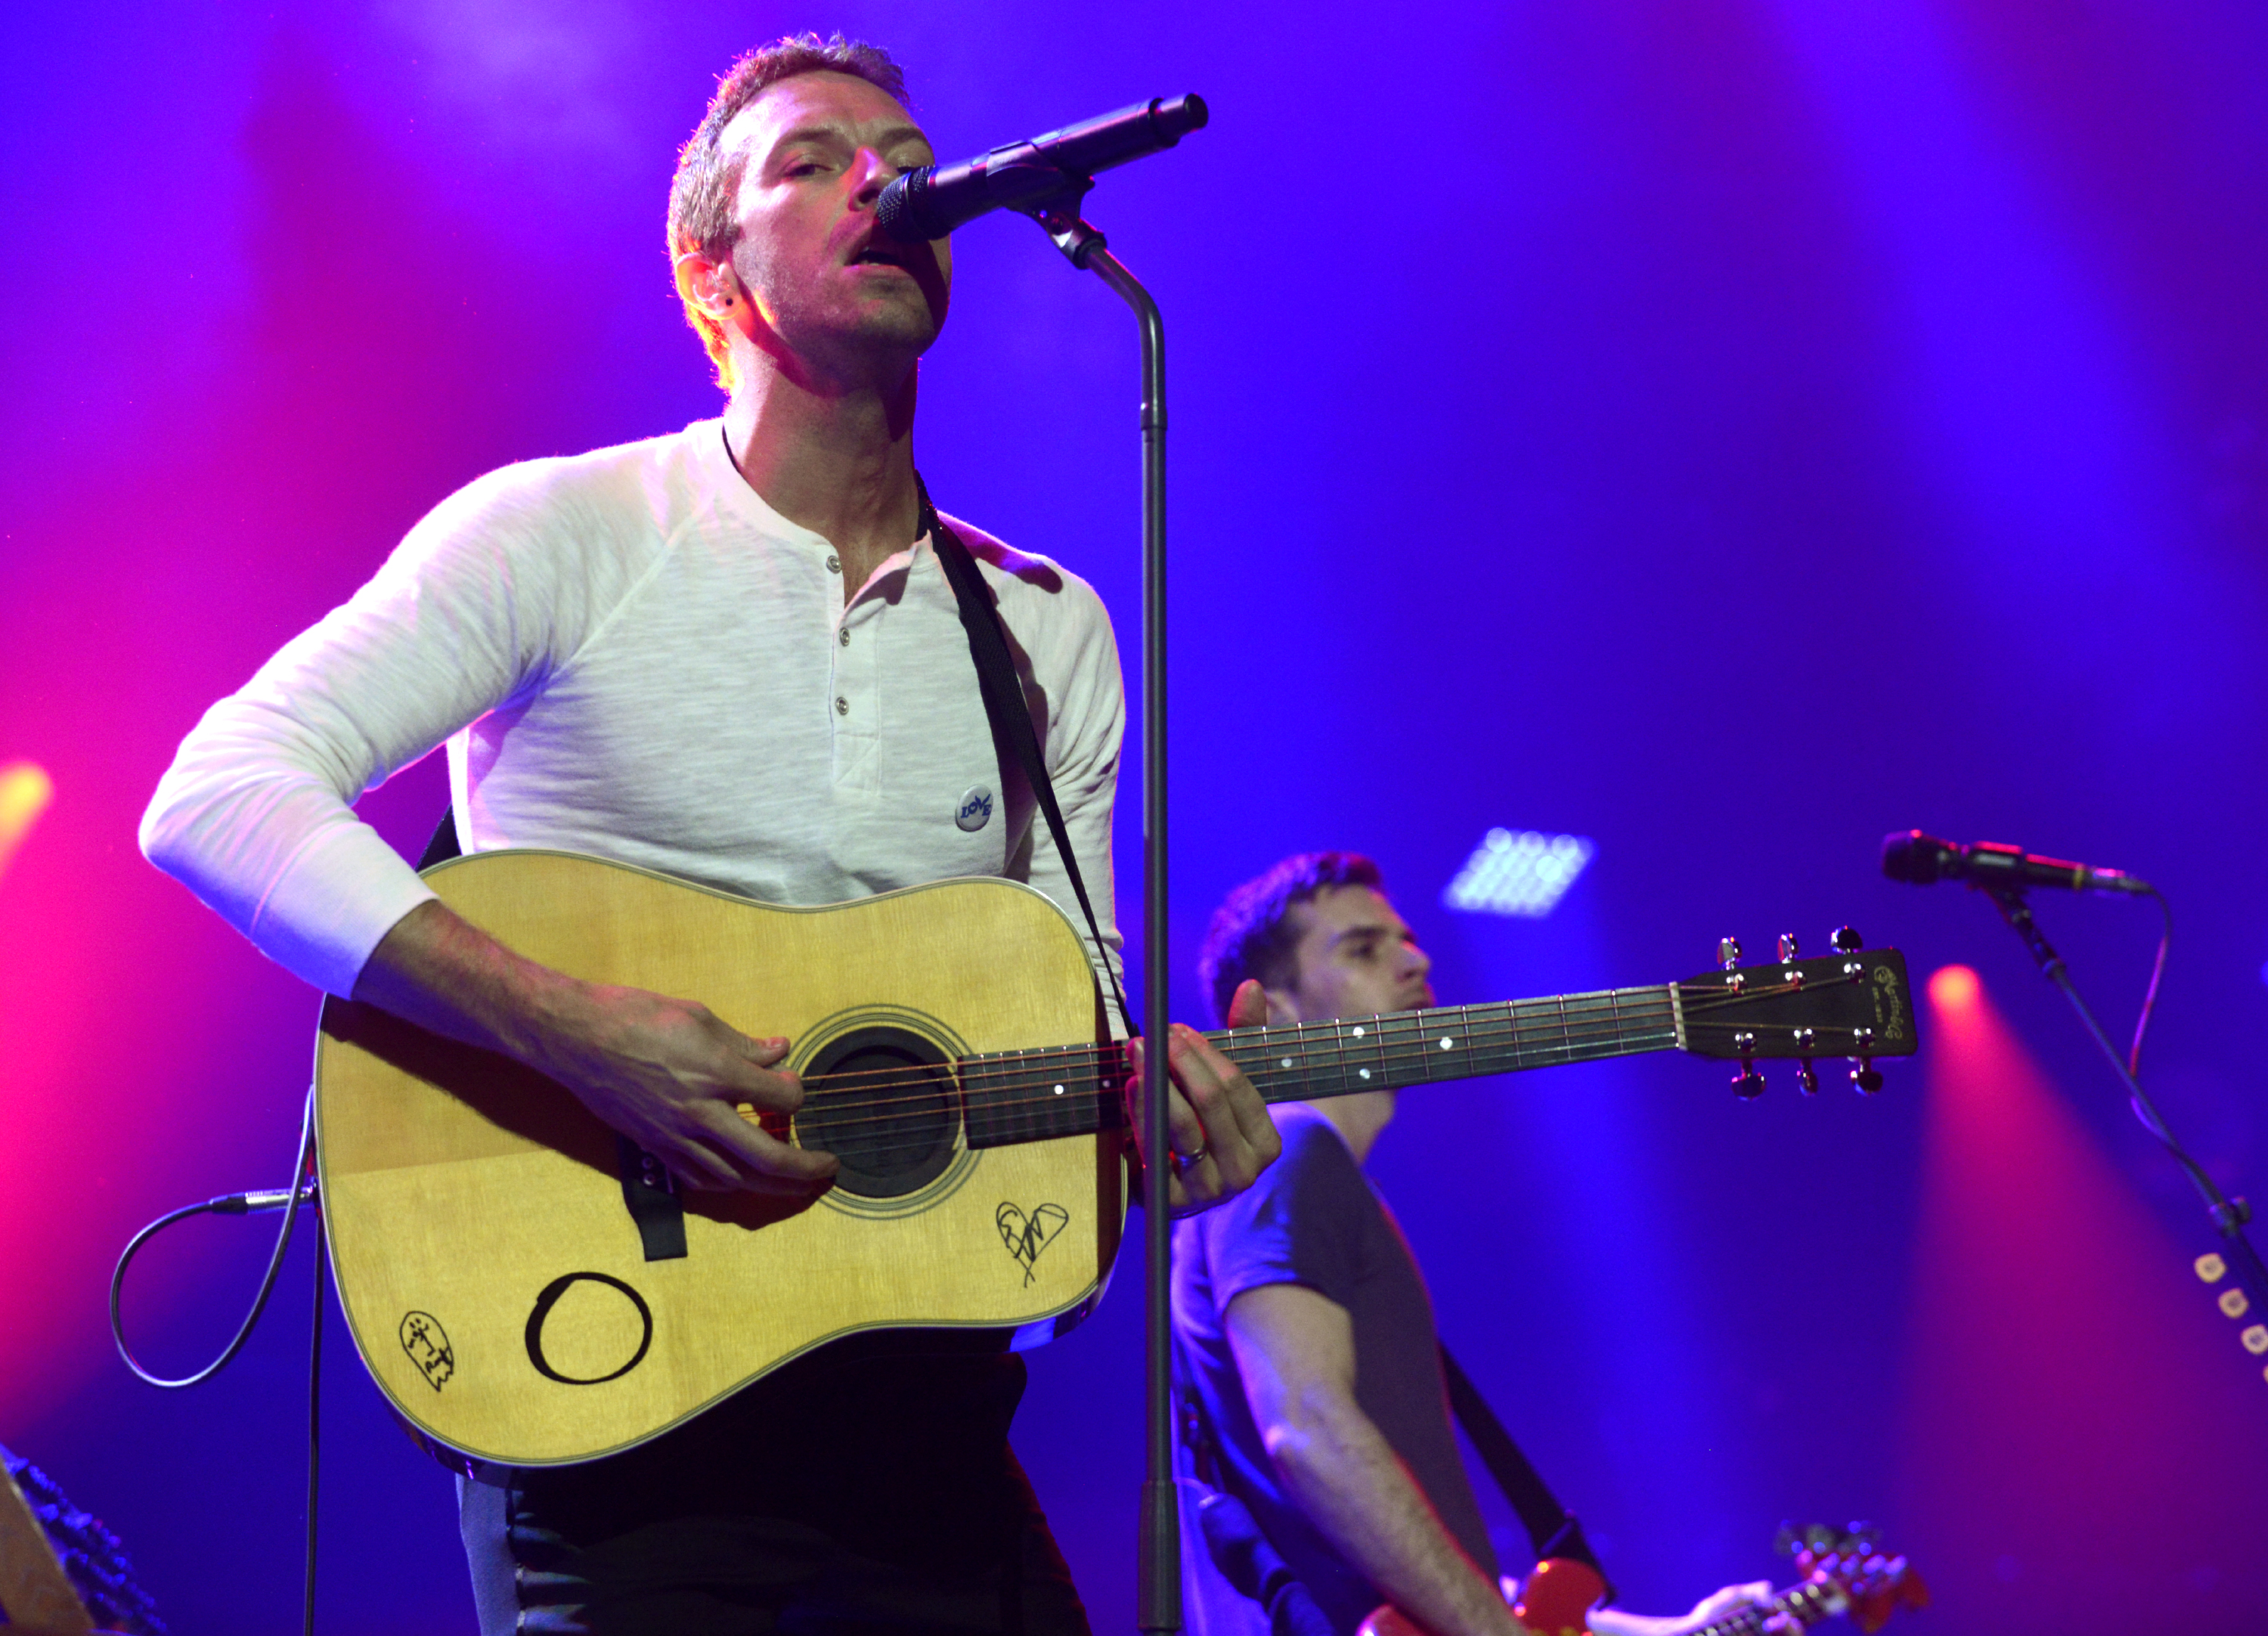 Chris Martin of Coldplay performs as part of the iTunes Festival at the Moody Theater on March 11, 2014 in Austin, Texas.